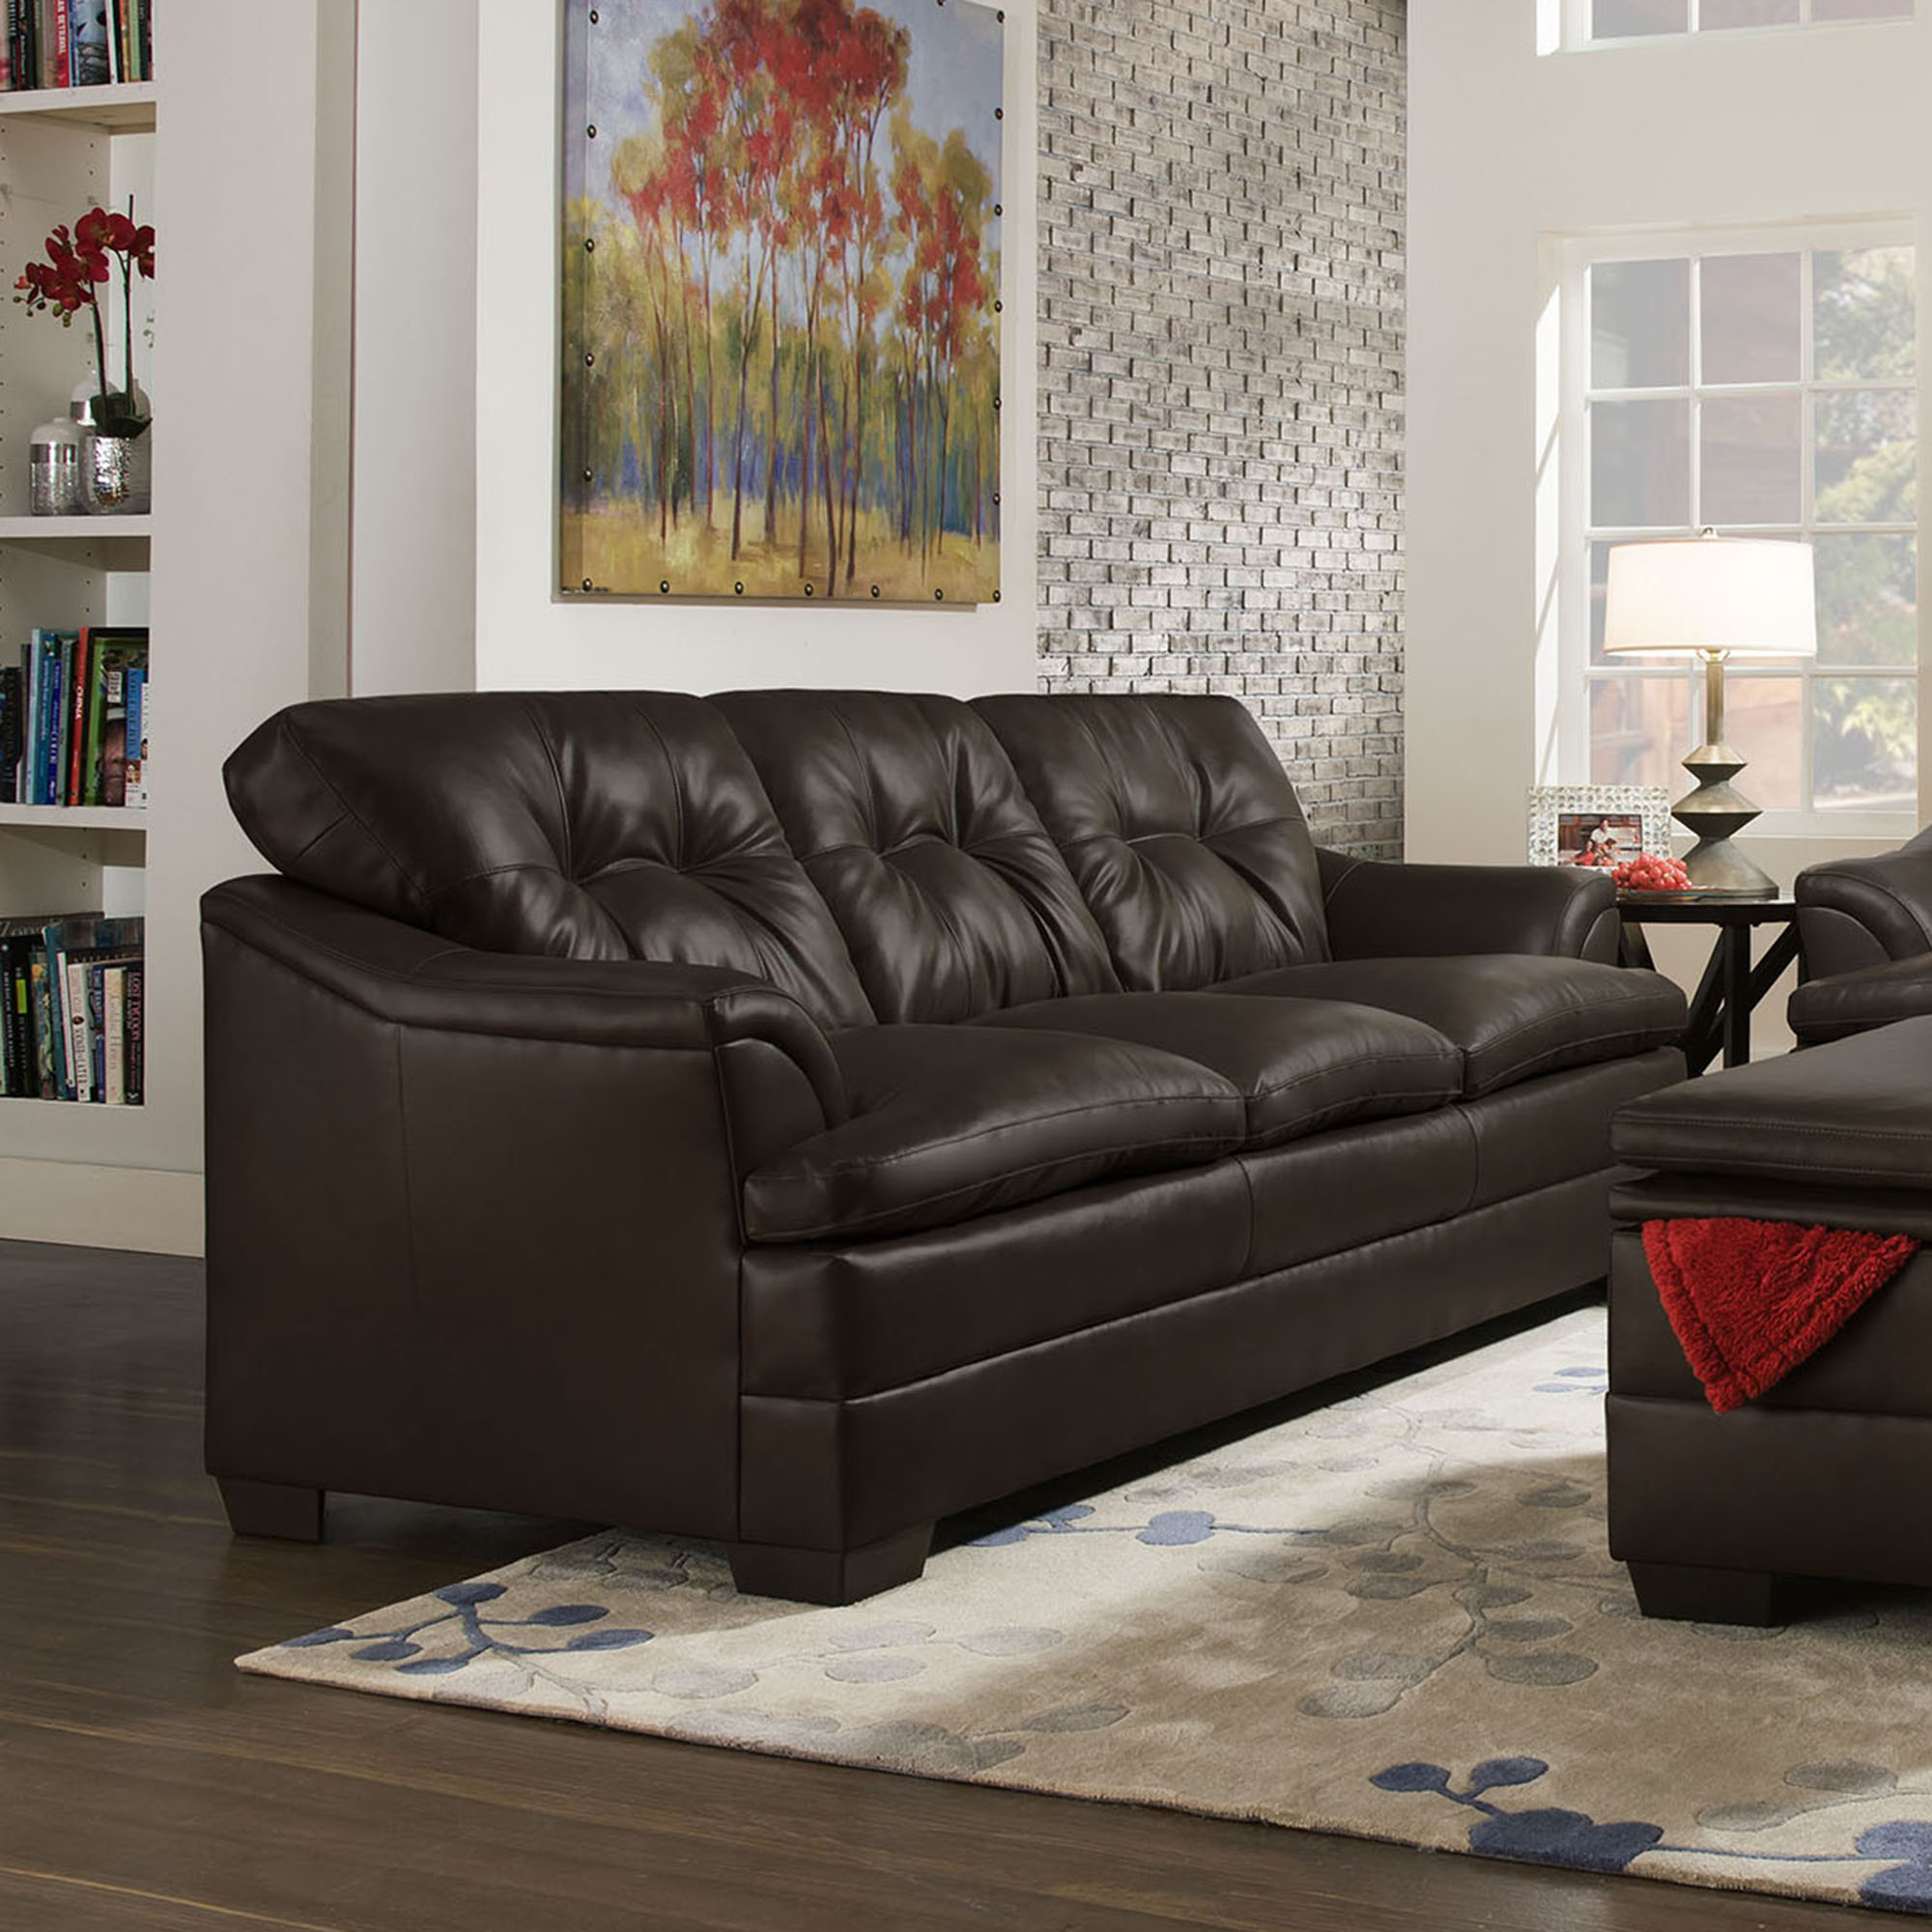 Best Apollo Sofa In Espresso Simmons Upholstery And Casegoods 640 x 480